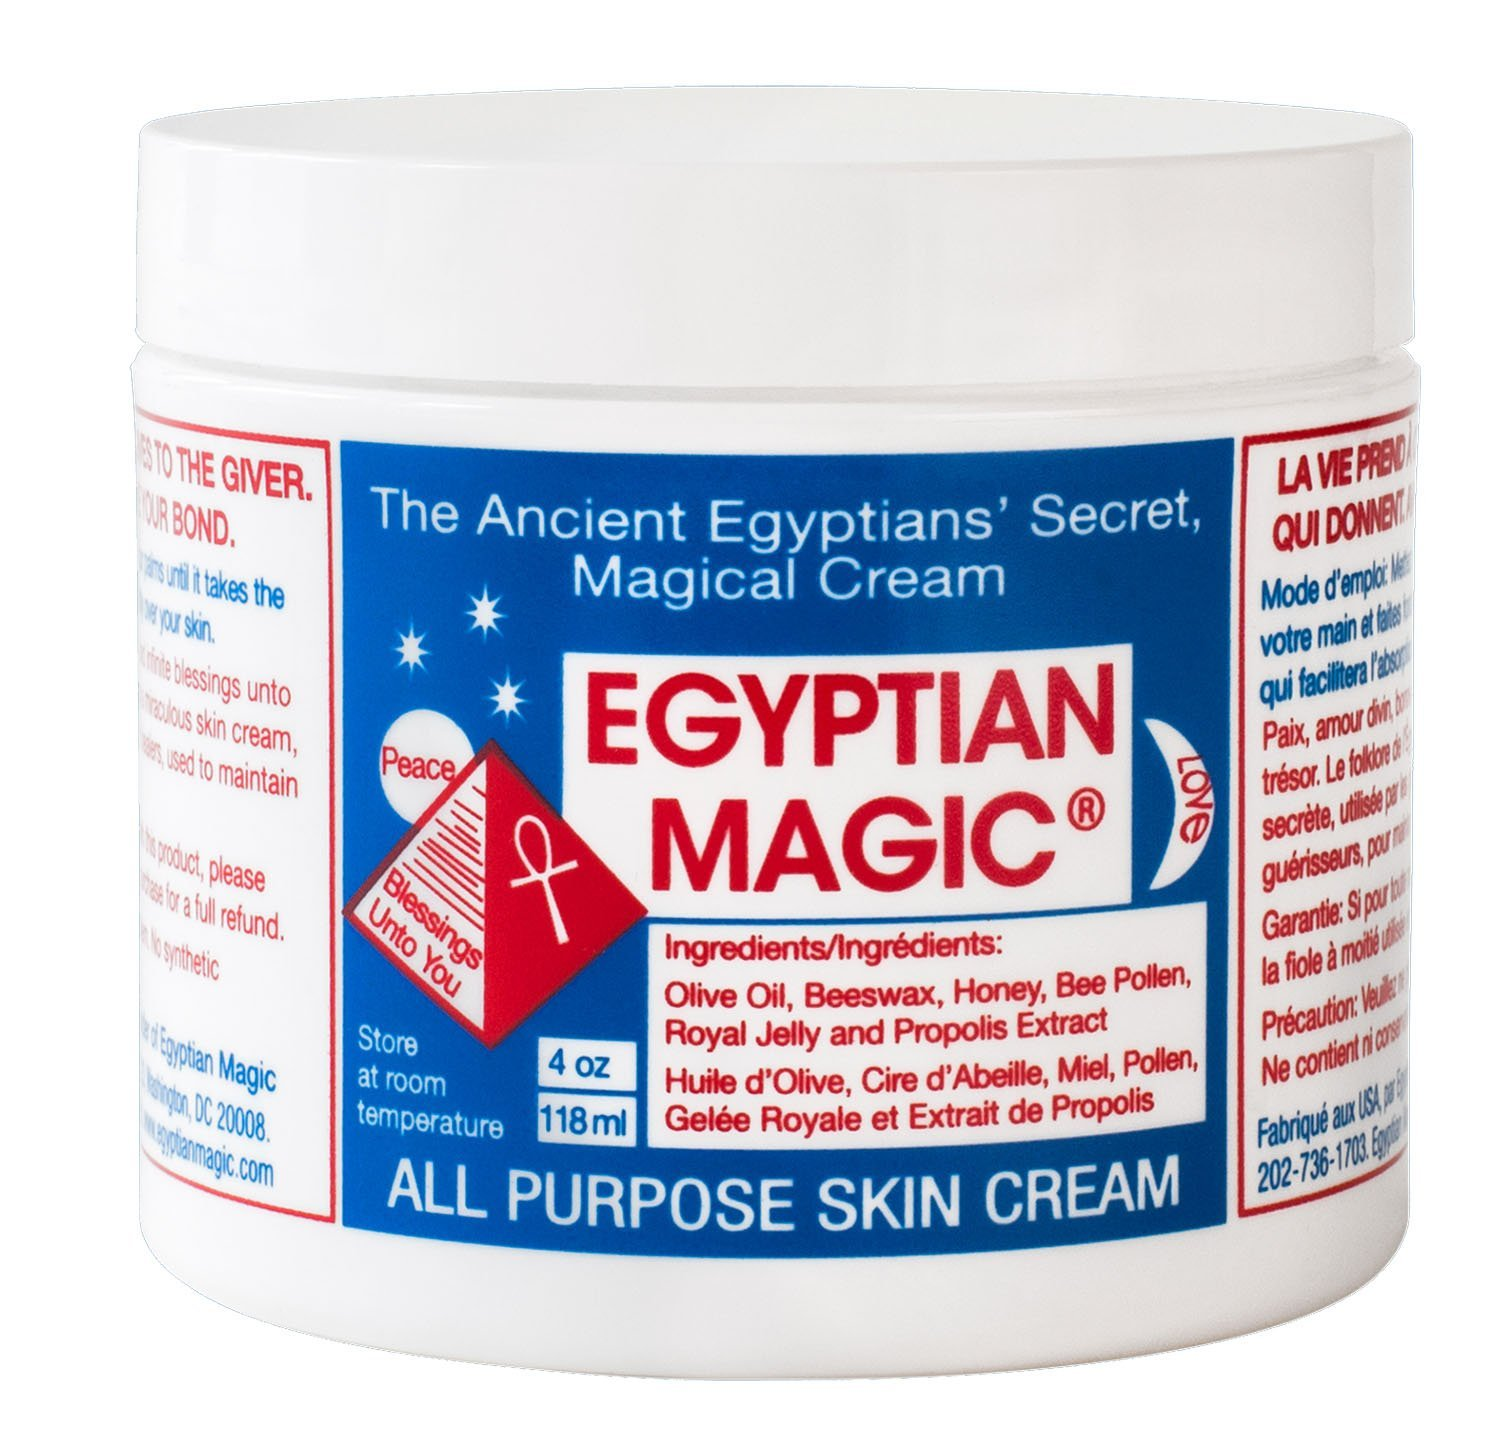 Egyptian Magic creme